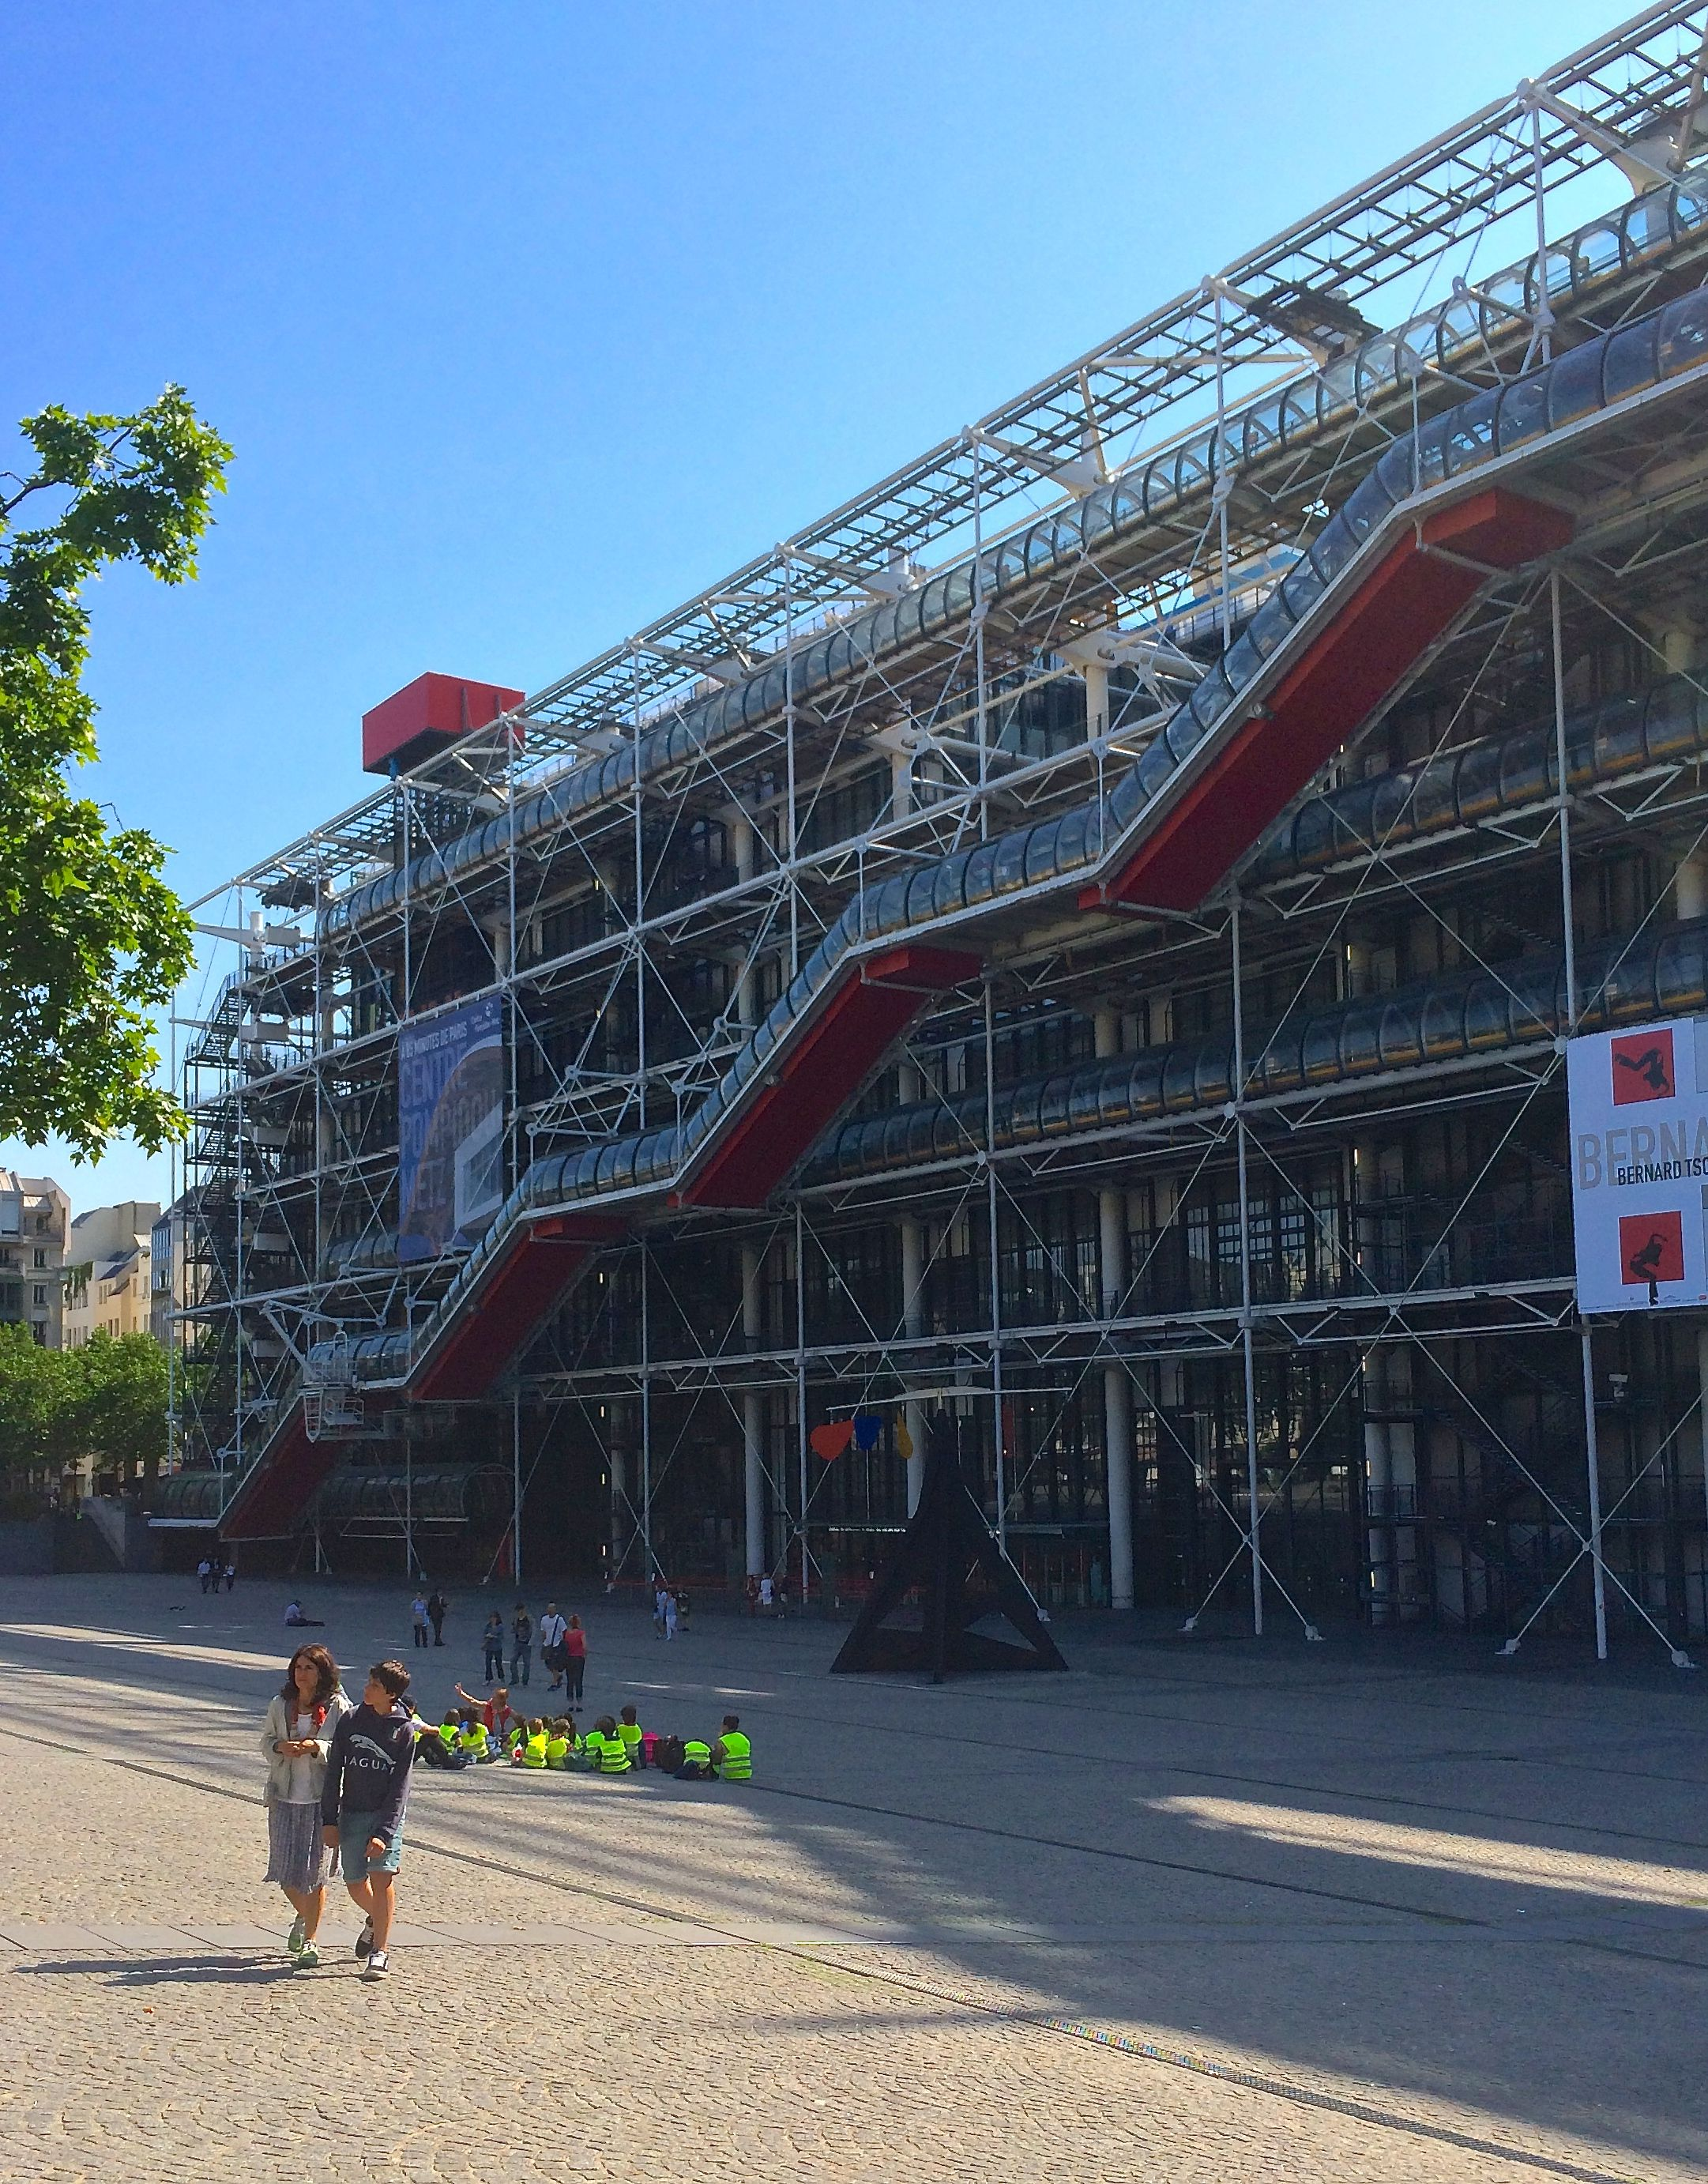 Centre Georges Pompidou as it looks today.